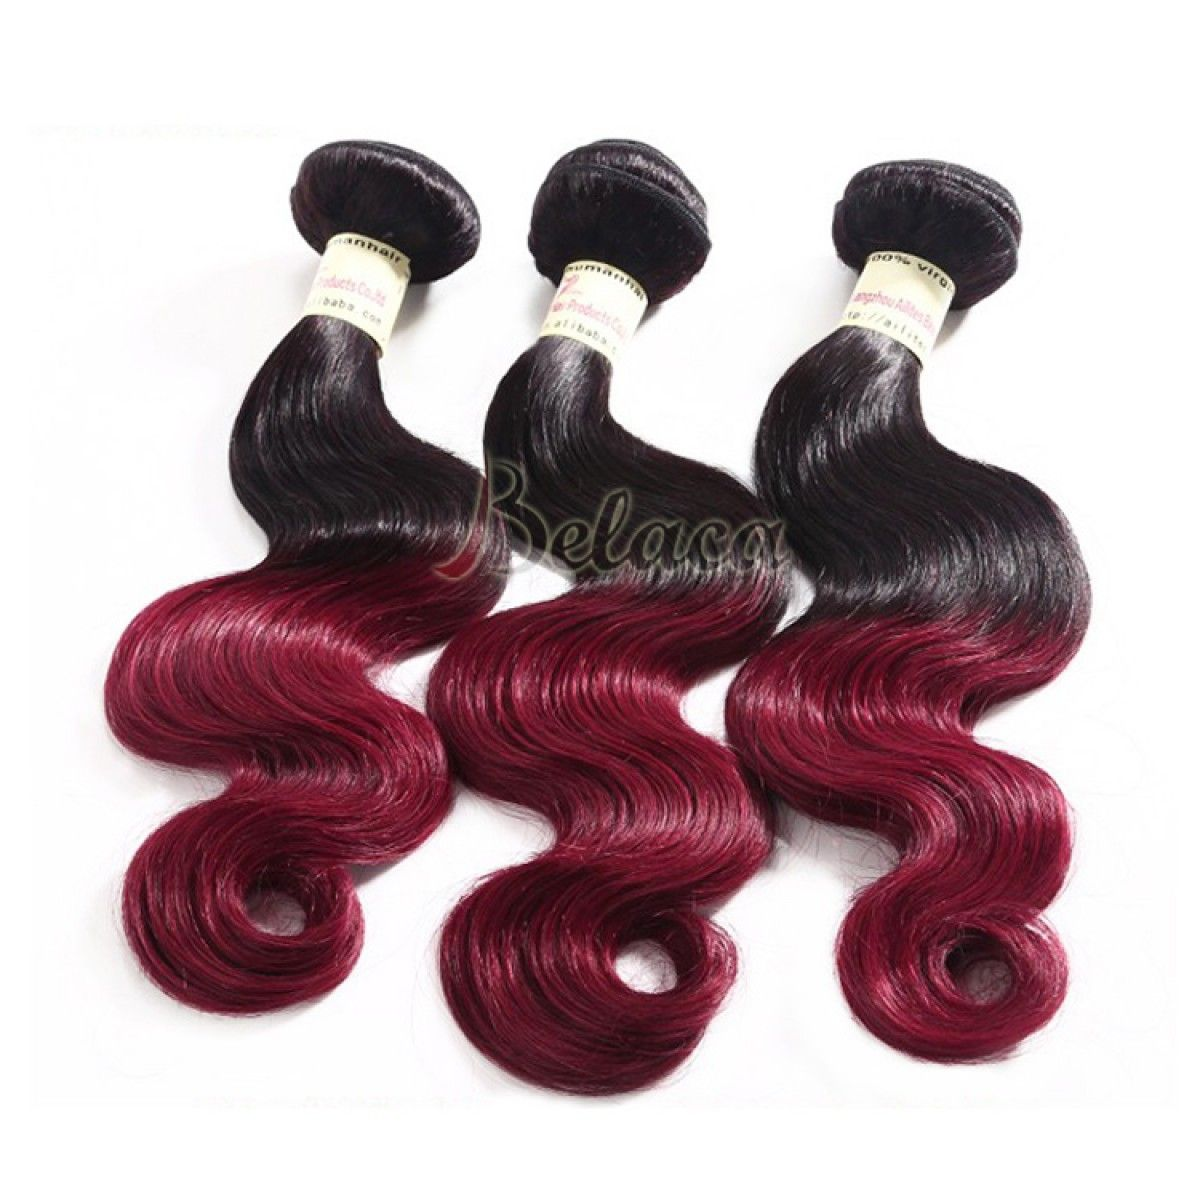 3 Bundles Cheap Purple Colored Sew In Weave Remy Hair Extensions For